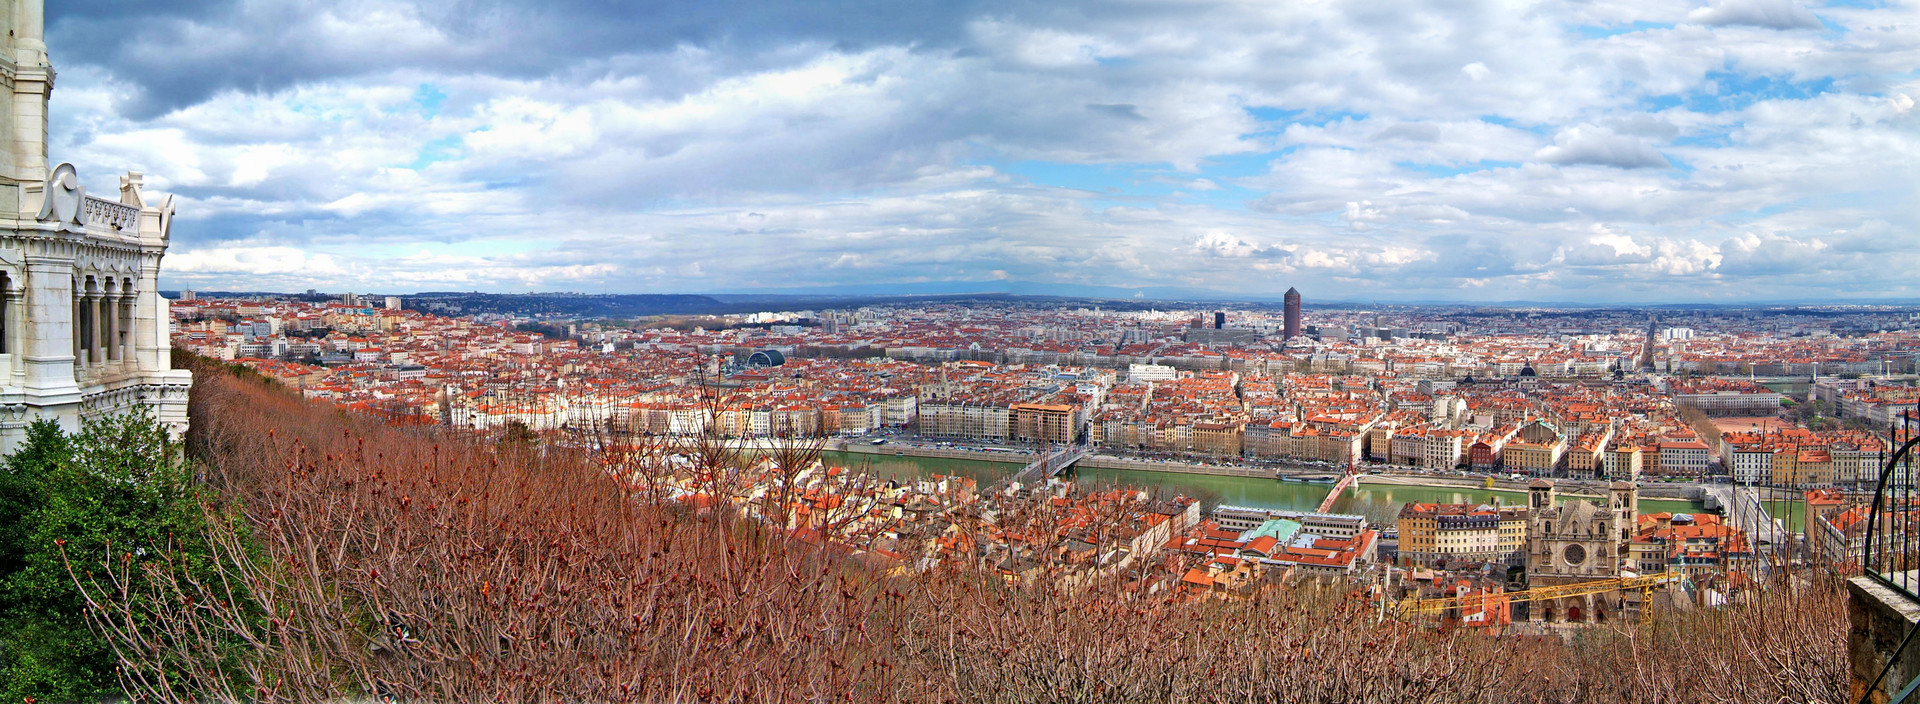 Mathilde's experience in Lyon, France